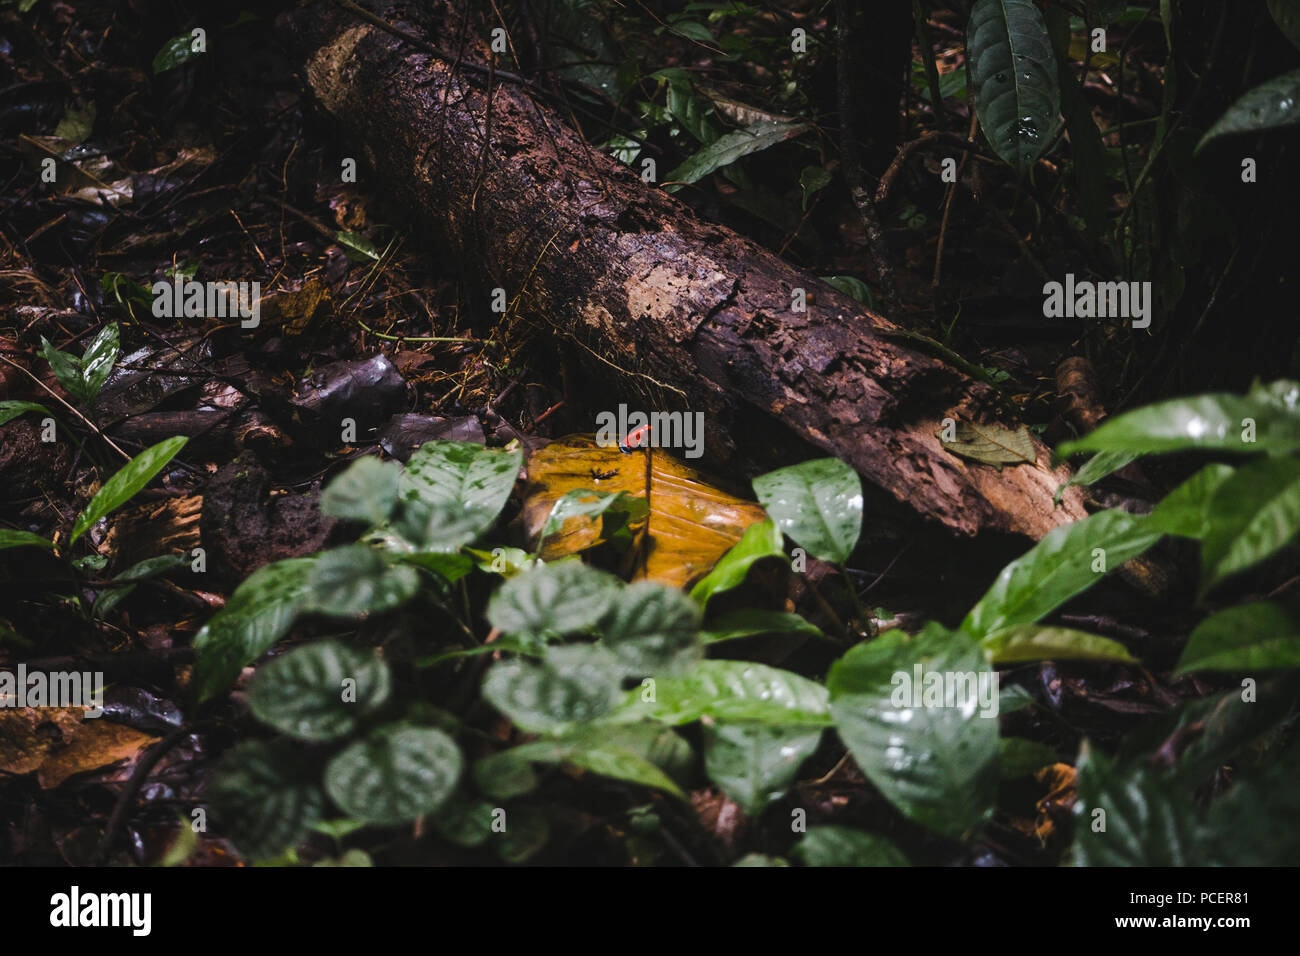 Small poisonous blue jean / strawberry poison-dart frog in the undergrowth of a rainforest in Costa Rica - Stock Image